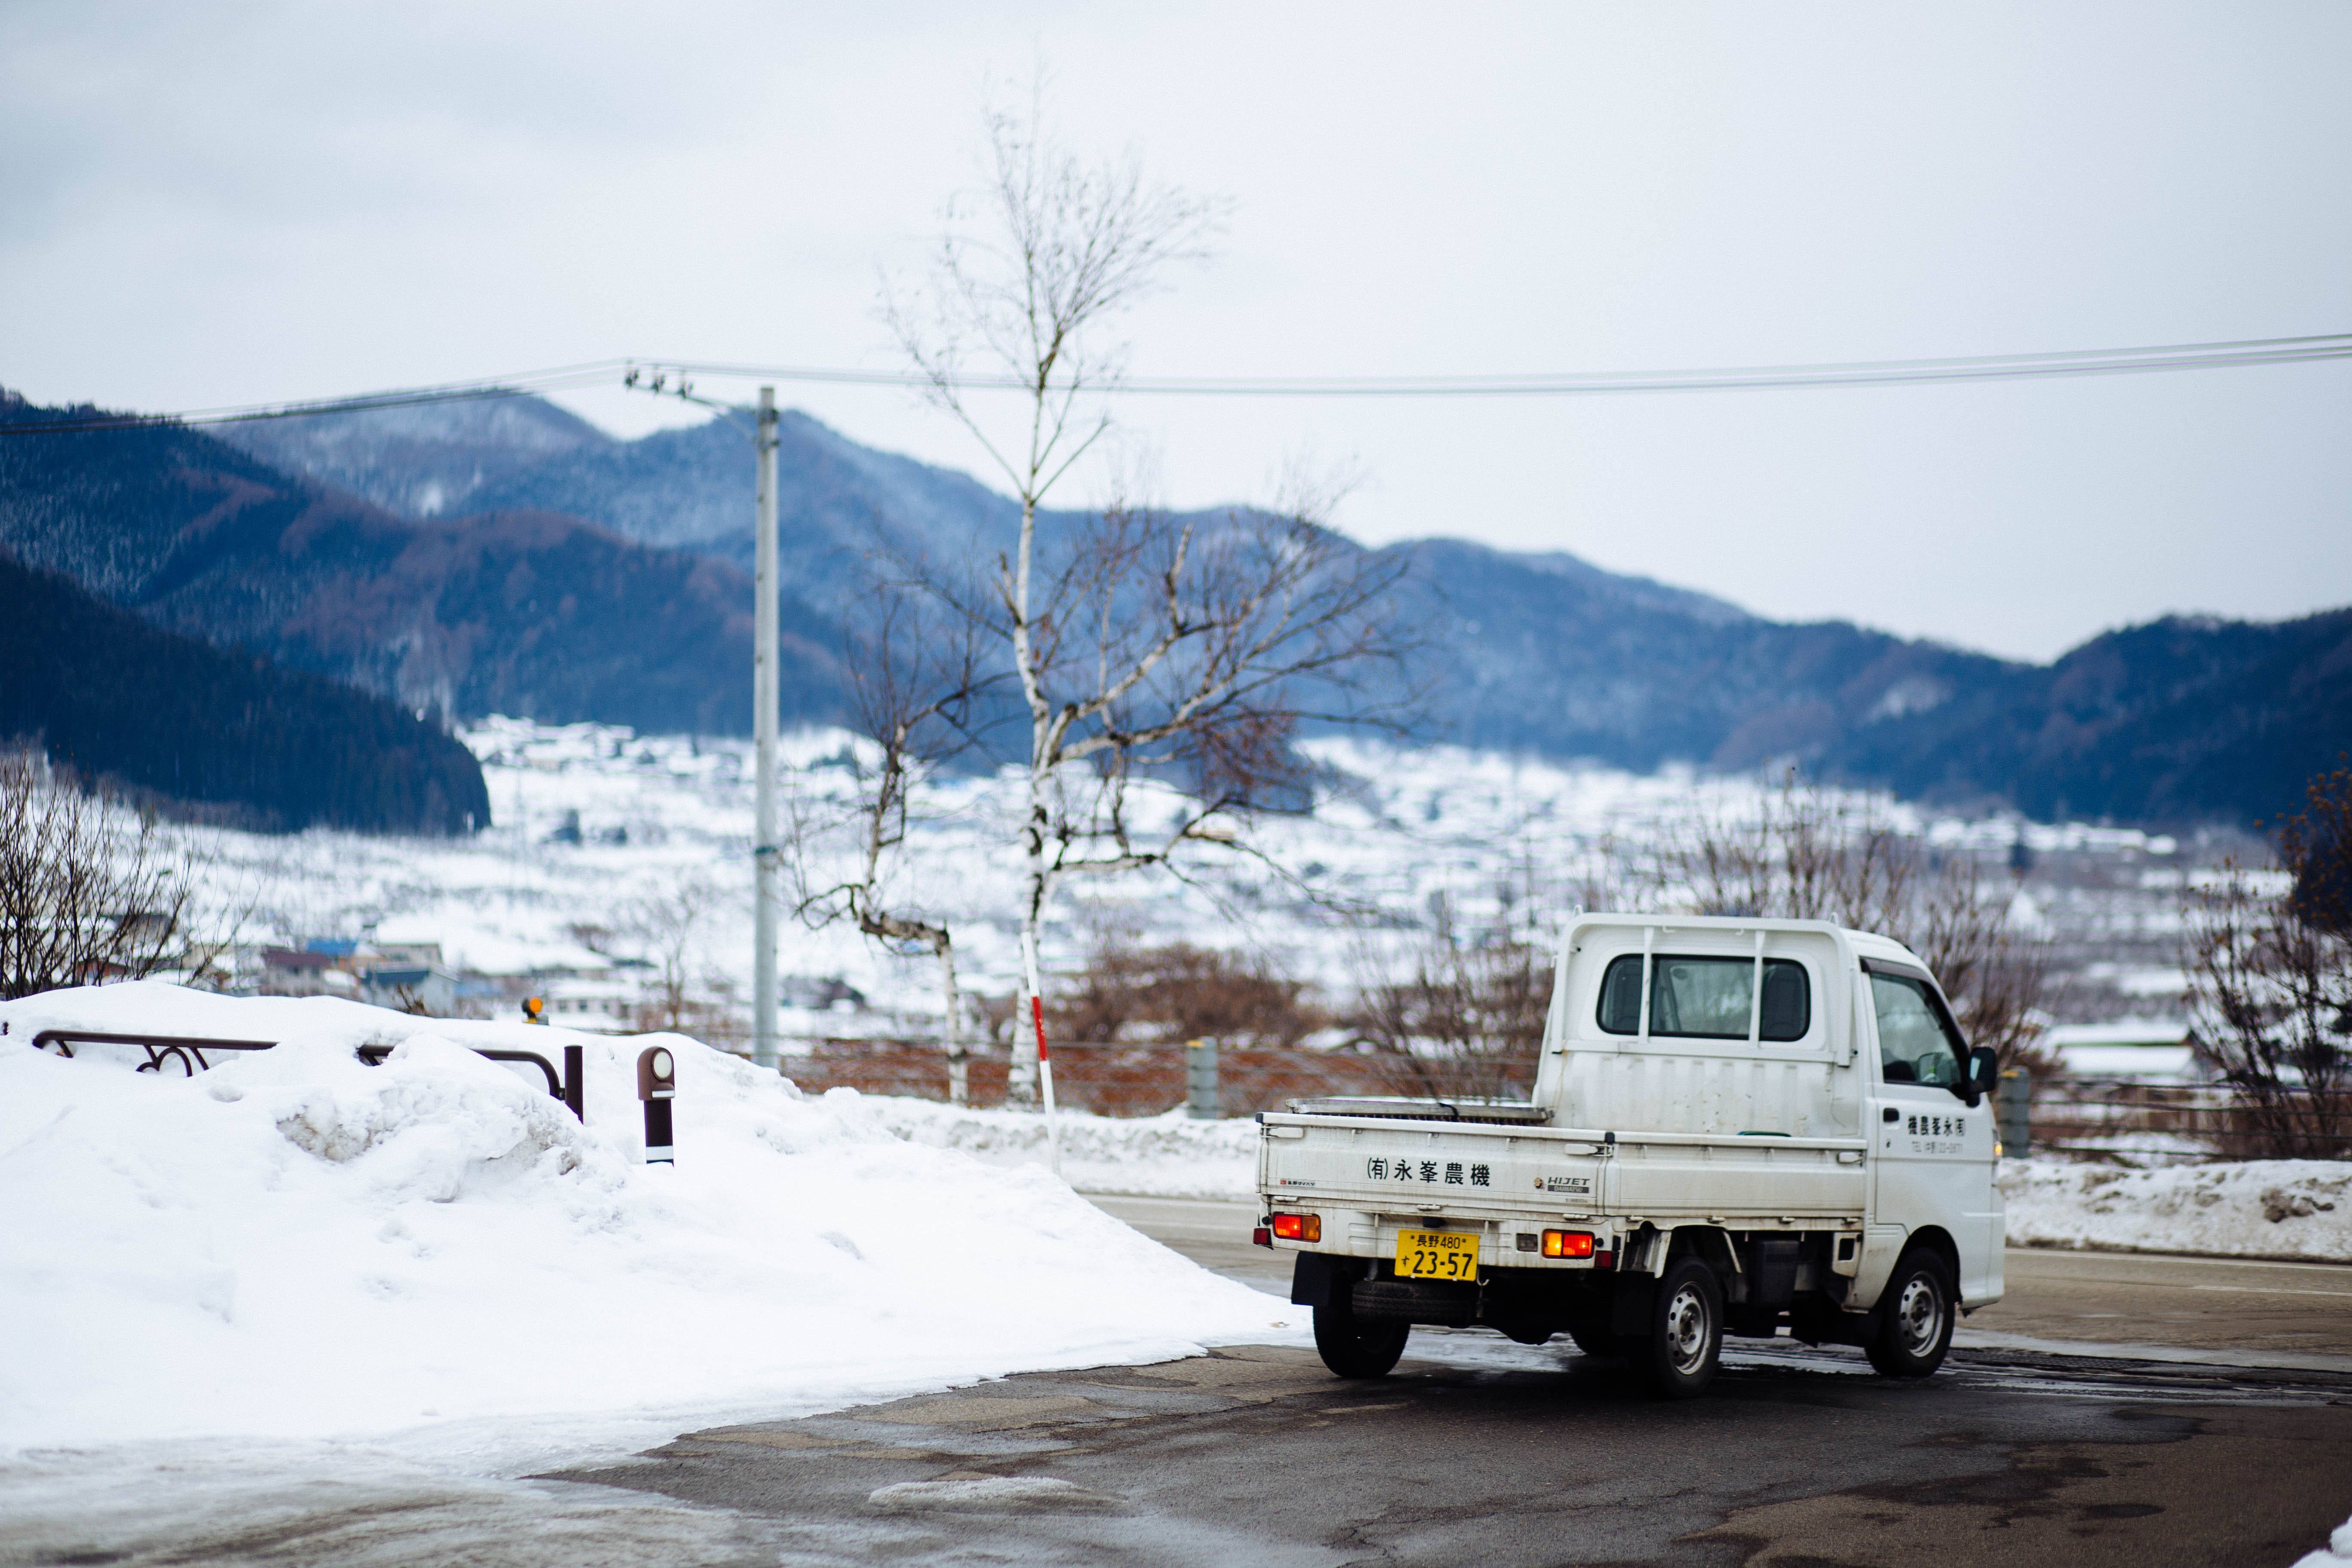 white drop side truck on road during winter season